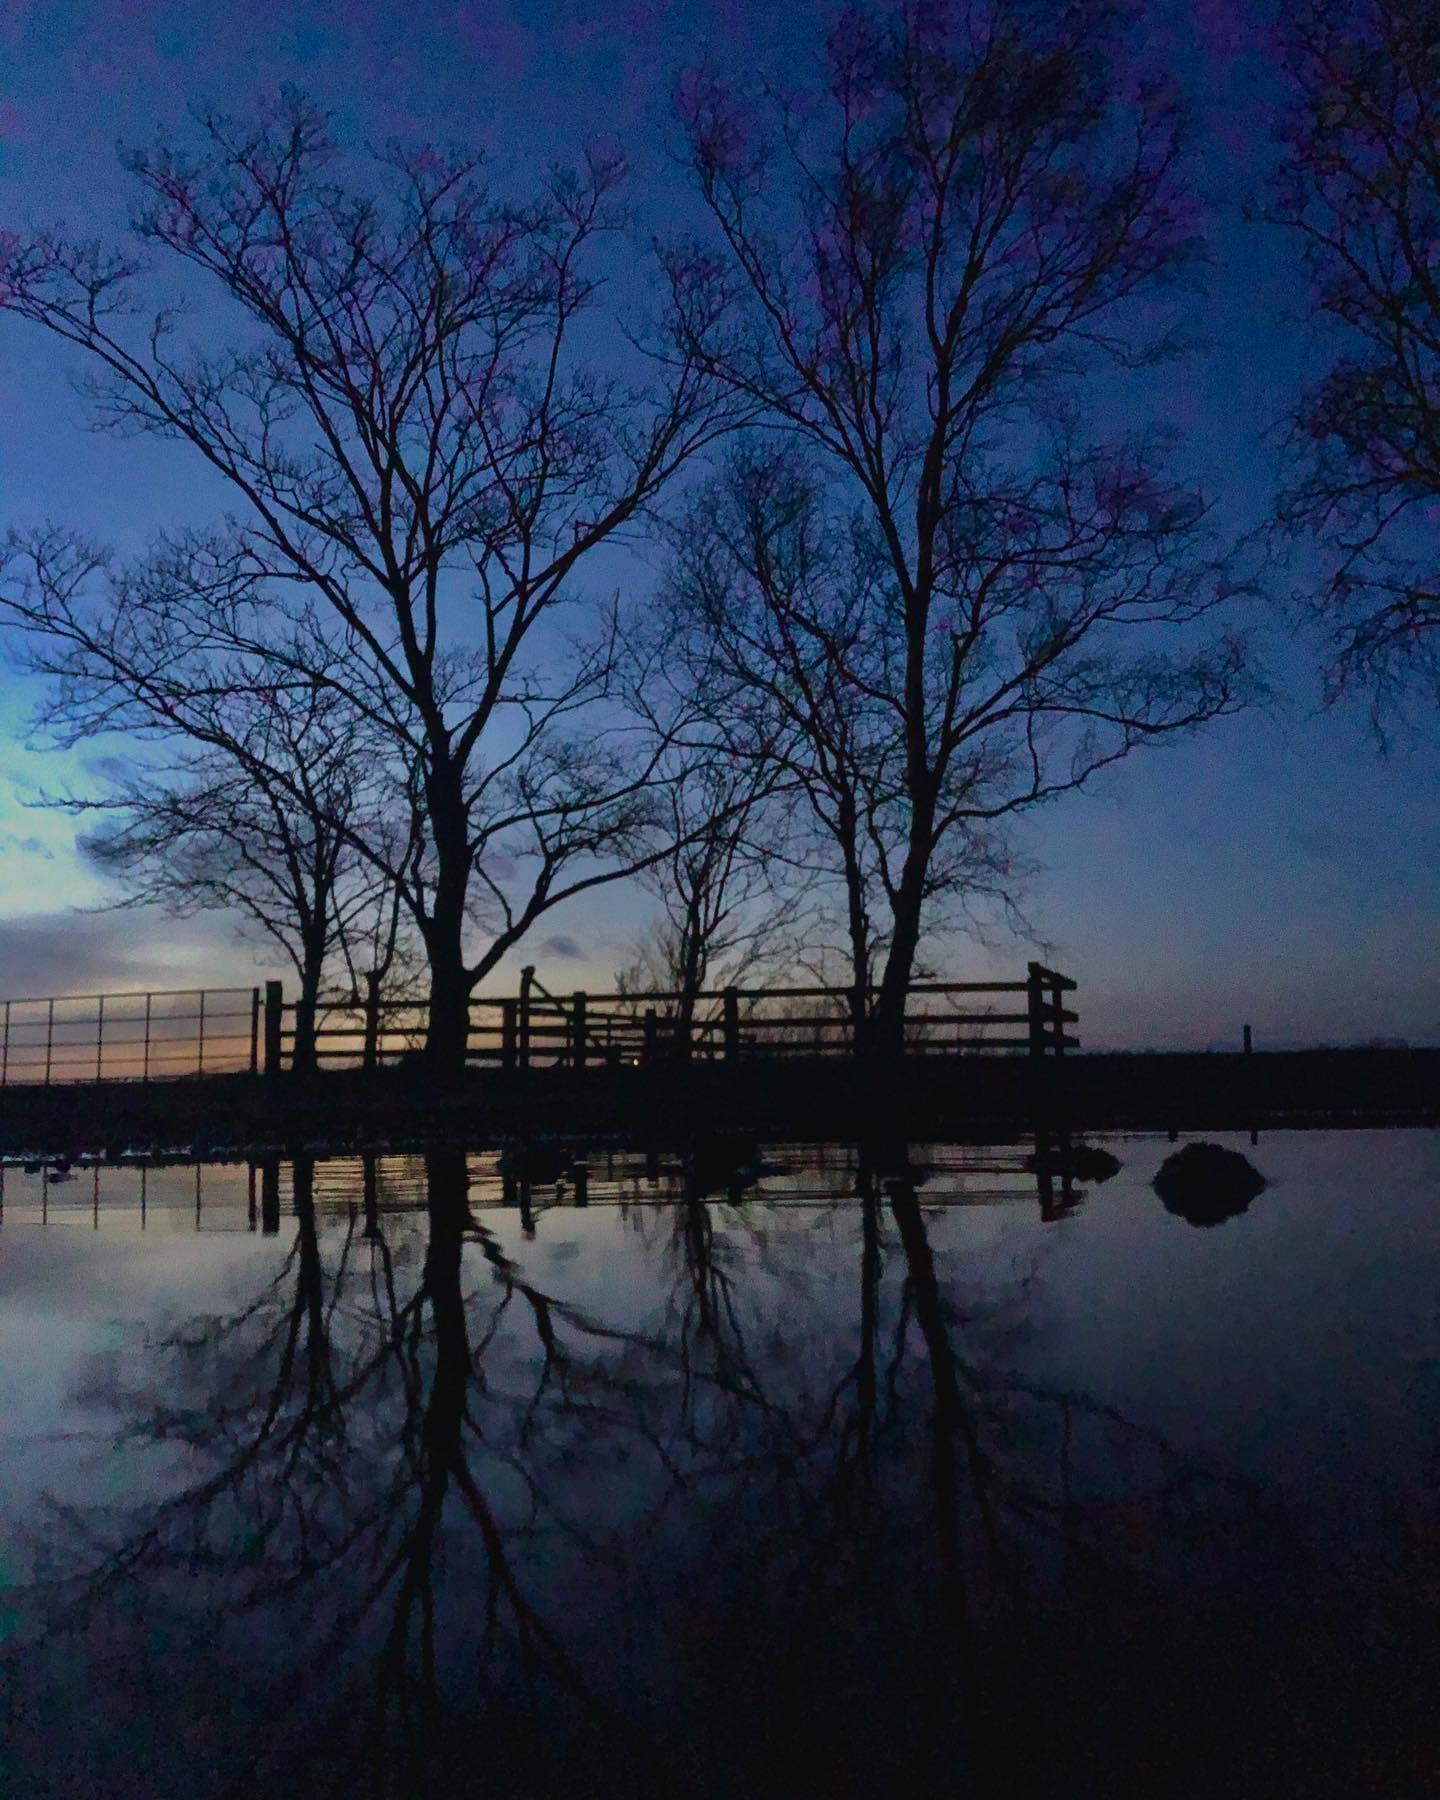 Some times when things arent going your way it's good so sit back and refelct on all the good times and good people in your life. Look for the positive, it's always there if you look hard enough :) . . Camera: iPhone 8 . . #photography #photo #photooftheday #photographer #trees #reflection #tree #reflectionphotography #reflective #dusk #evening #spring #meloncholy #positivevibes #positive #positiveenergy #lookingforward #iphone8 #applephotography #calm #calming #still #explorenorthumberland